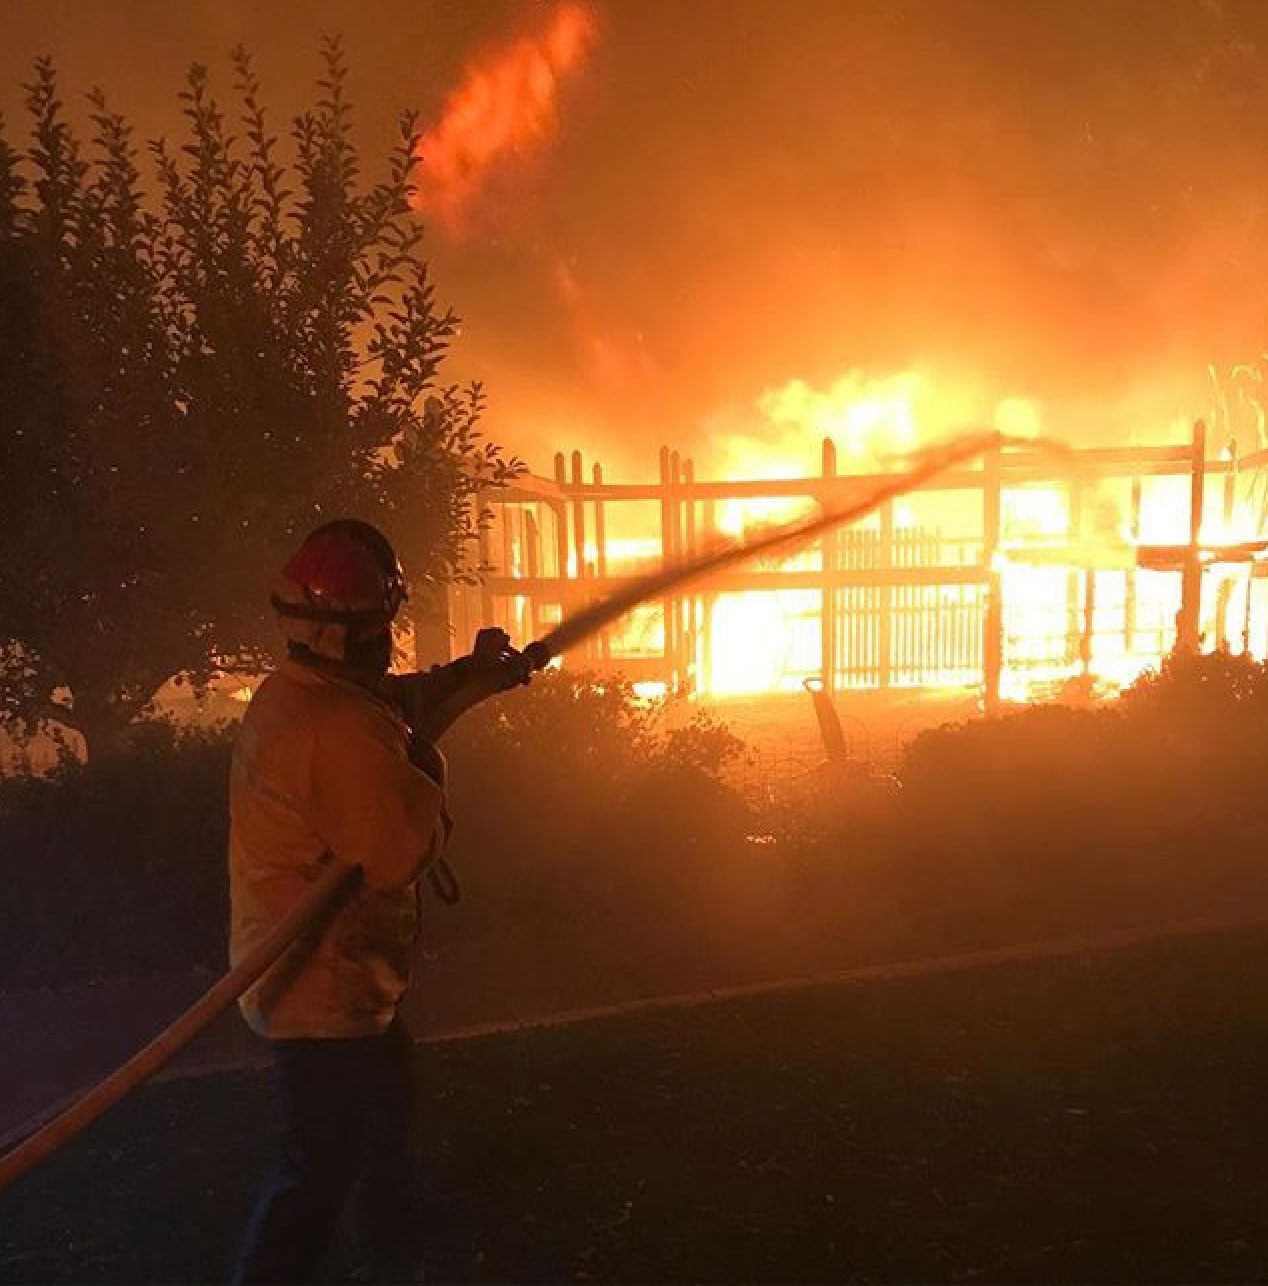 "<div class=""meta image-caption""><div class=""origin-logo origin-image none""><span>none</span></div><span class=""caption-text"">Windsor Fire posted this action shot and thanked the community for their support. (windsor_fire/Instagram)</span></div>"